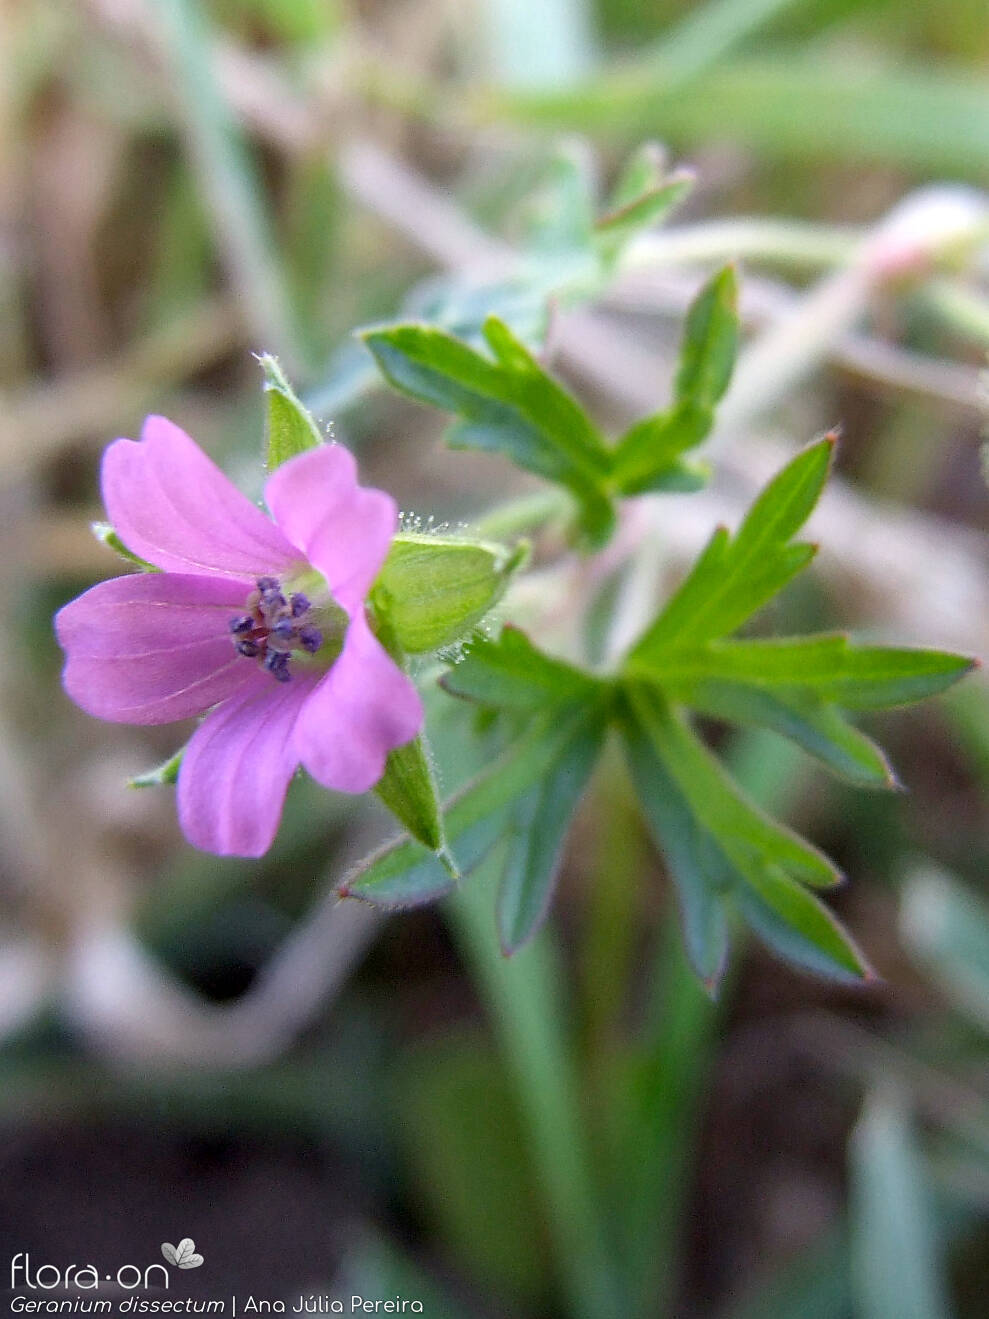 Geranium dissectum - Flor (close-up) | Ana Júlia Pereira; CC BY-NC 4.0